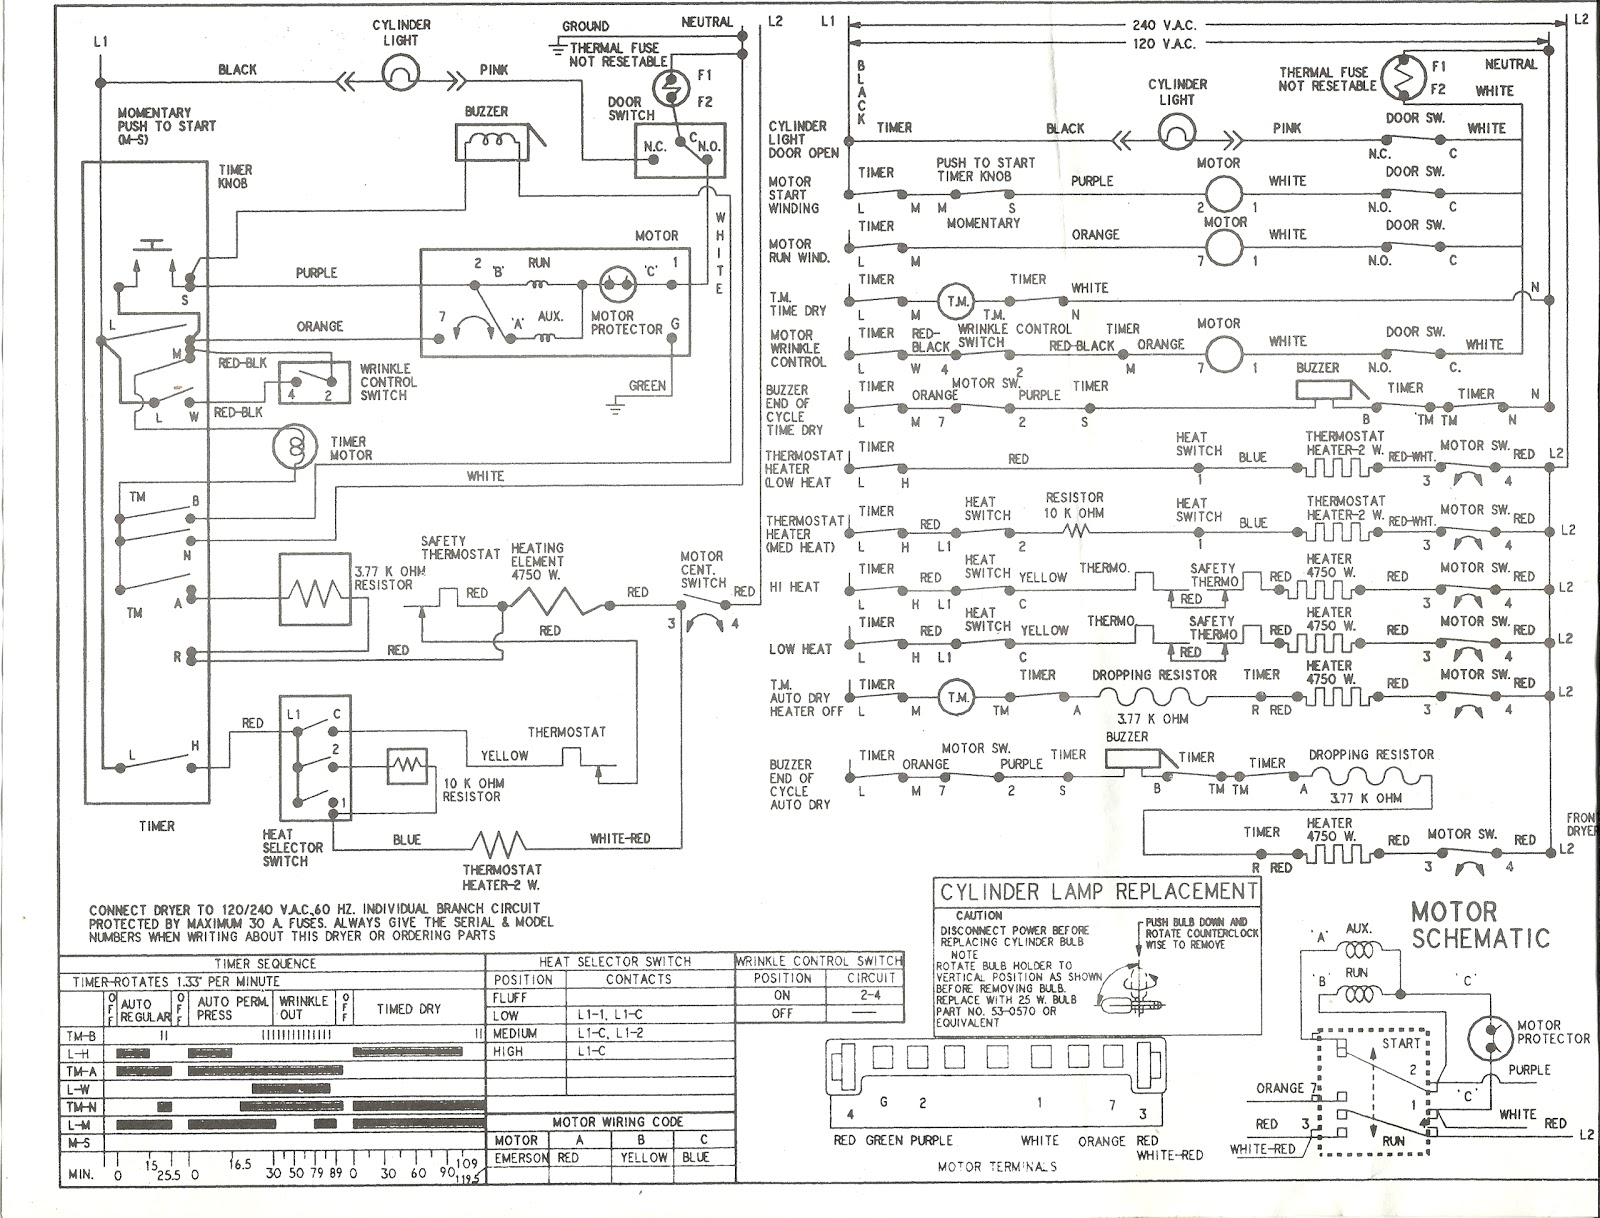 scan0001 wiring diagram dryer whirlpool dryer thermostat wiring diagram  at gsmportal.co